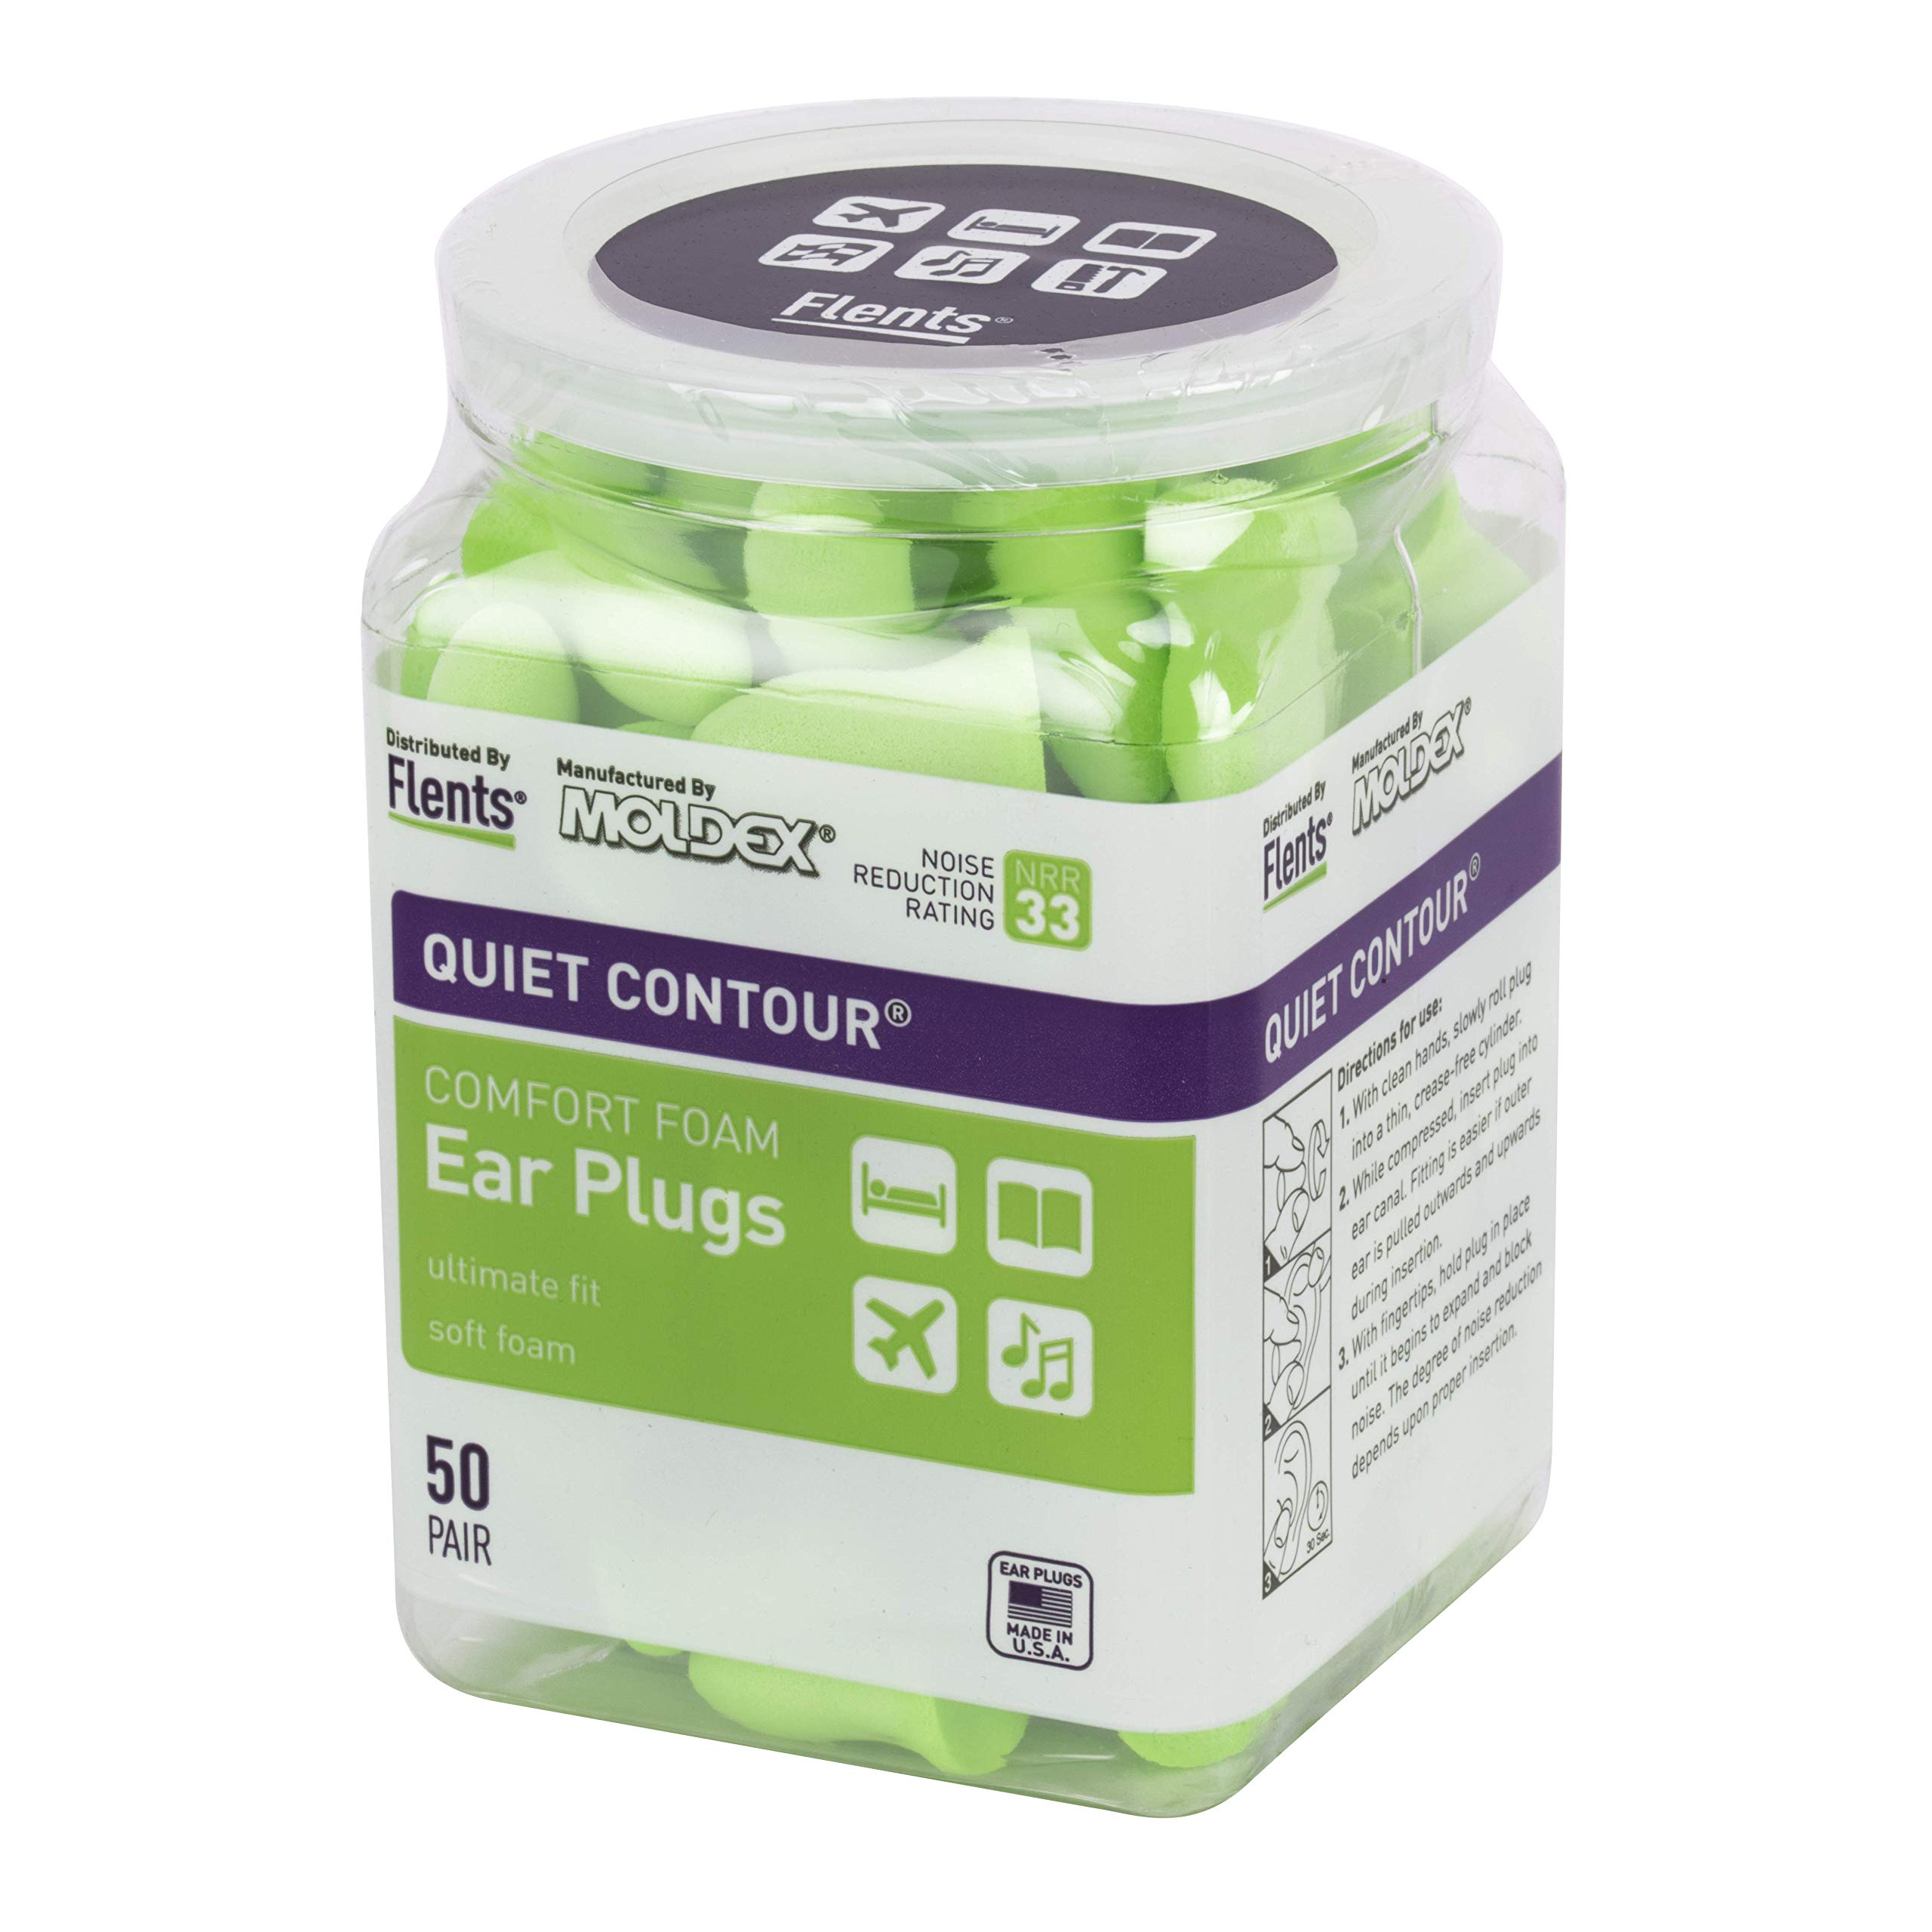 Flents Quiet Contour Ear Plugs/Earplugs | 50 Pair | NRR 33 | Made in The USA by Flents